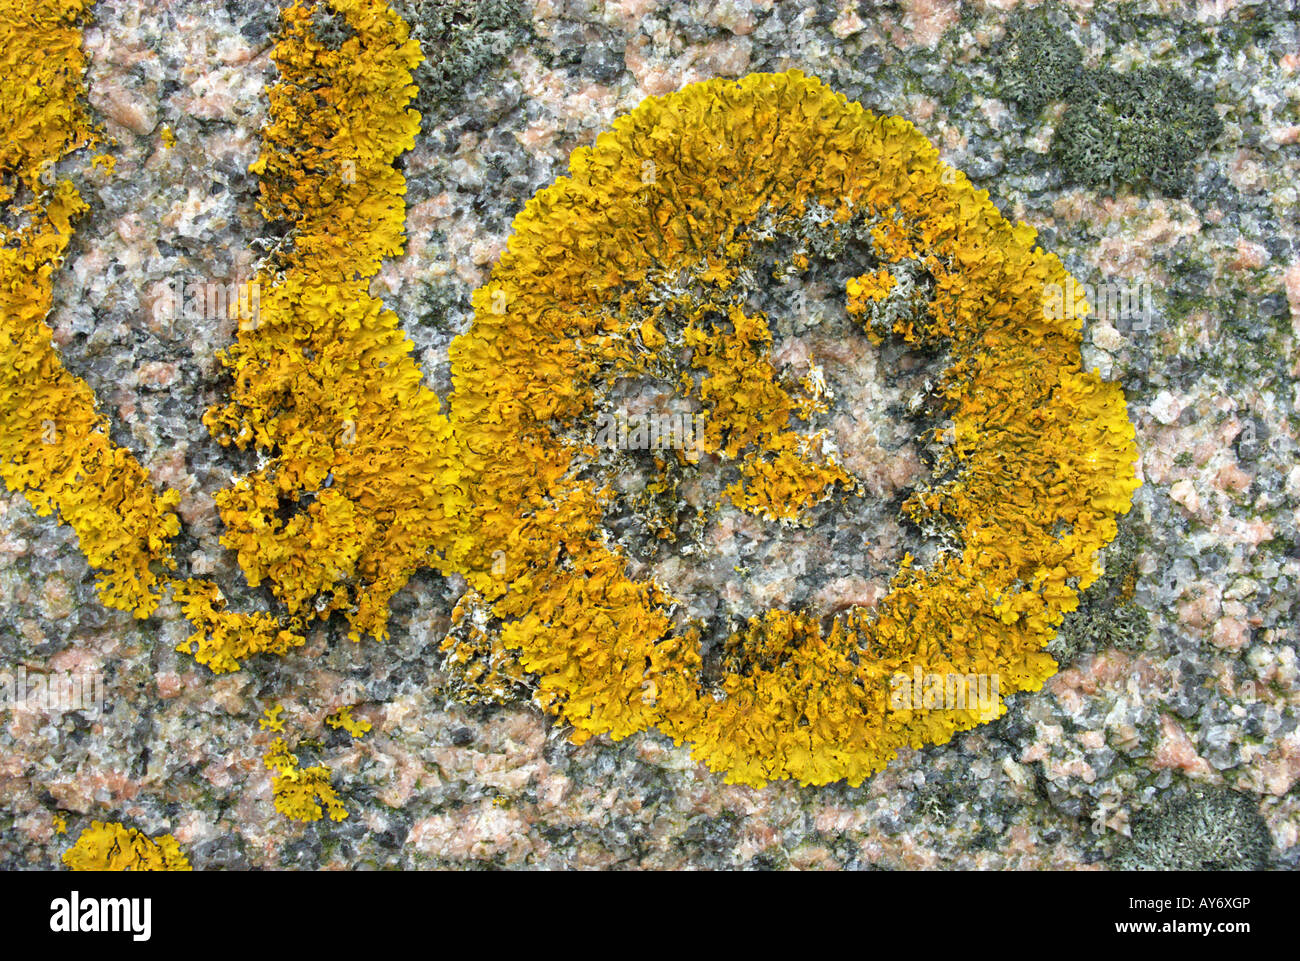 Xanthoria parietina with missing thallus (orange lichen) thrives on granite fertilized by bird droppings, west coast - Stock Image